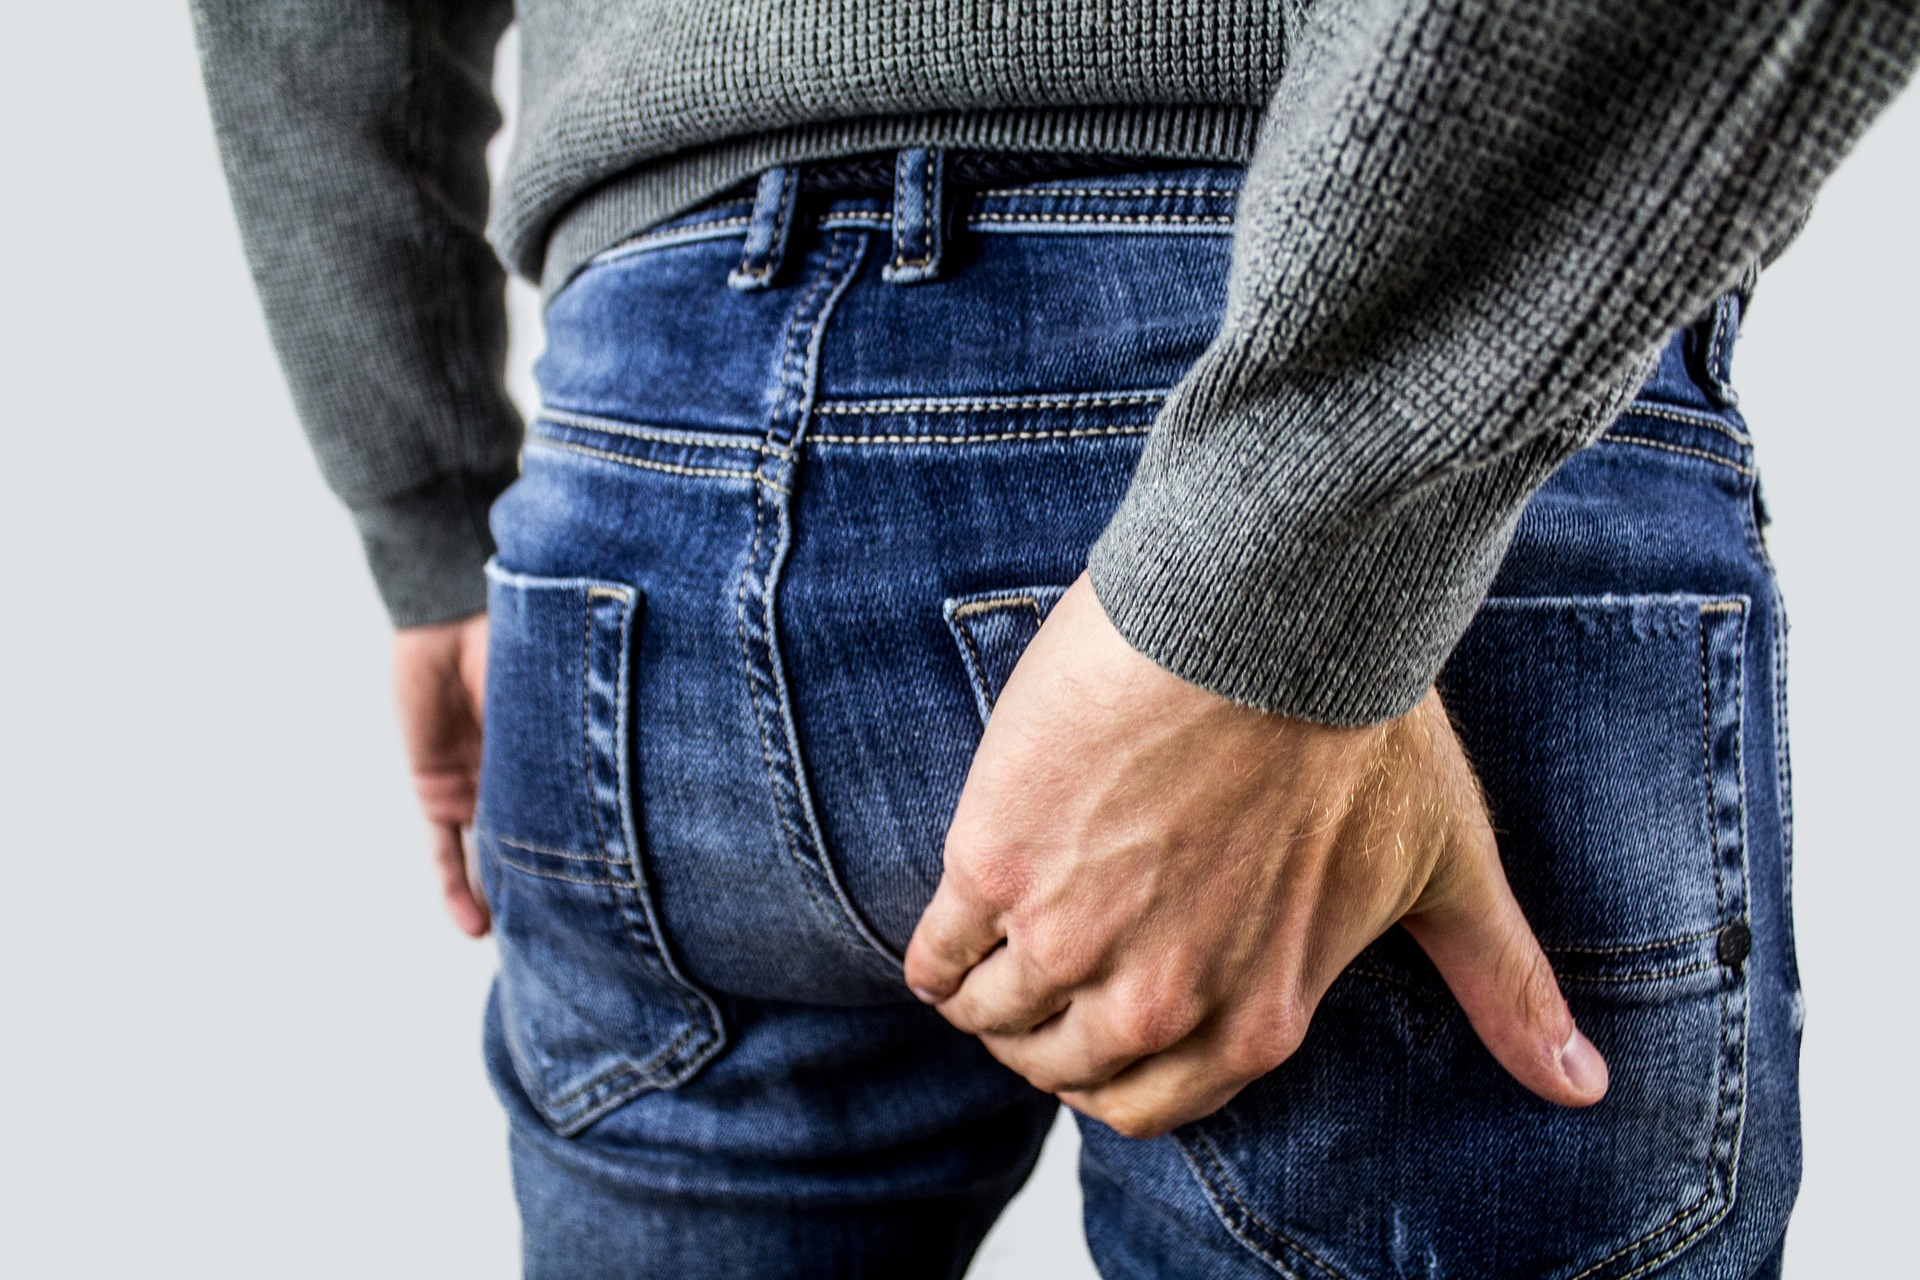 Prostate Cancer Care: What Men Approaching 50 Need To Know